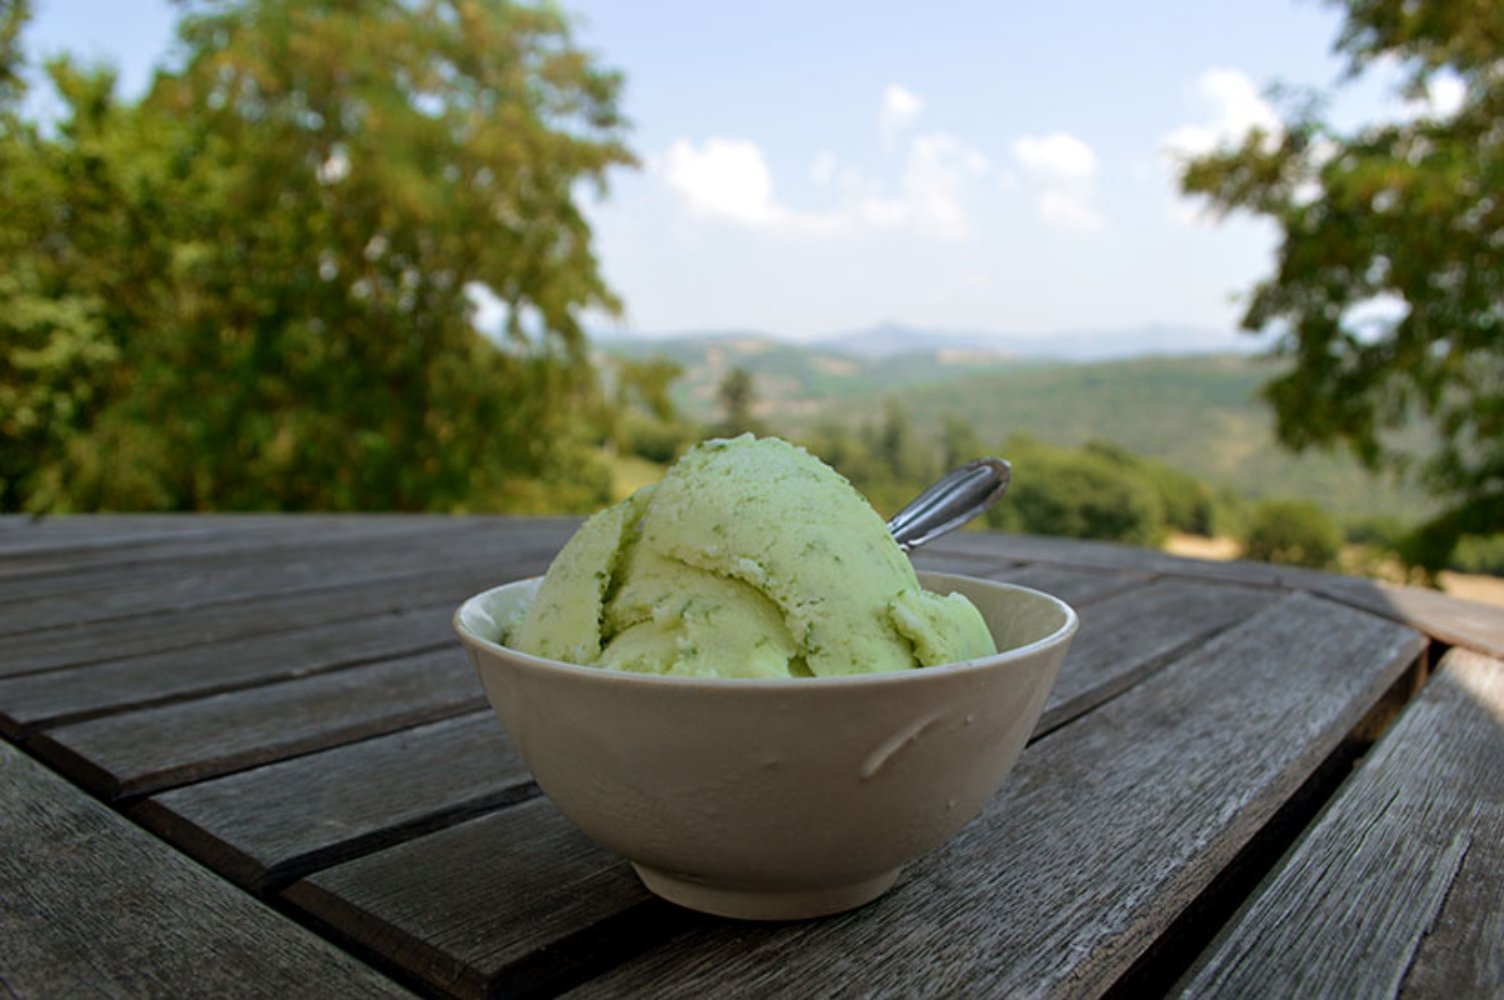 Lemon and Basil gelato